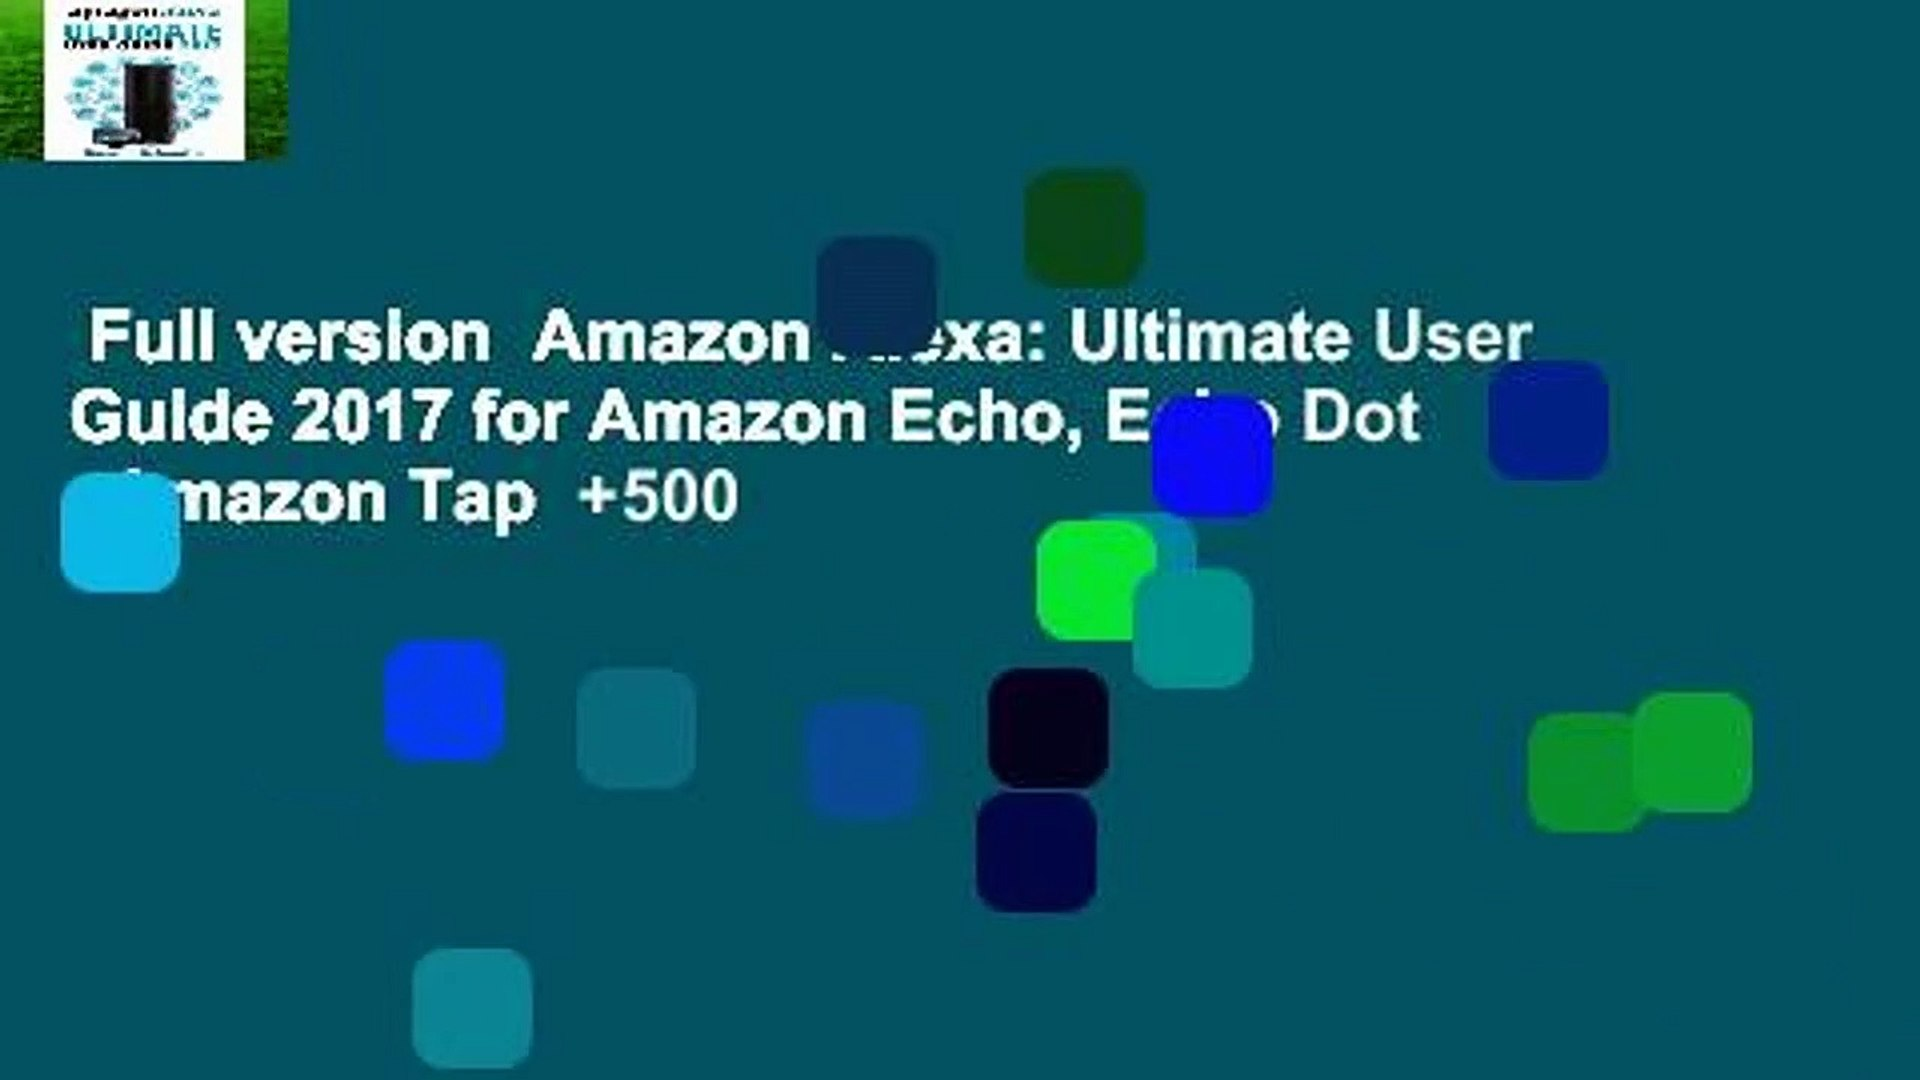 Full version  Amazon Alexa: Ultimate User Guide 2017 for Amazon Echo, Echo Dot   Amazon Tap  +500